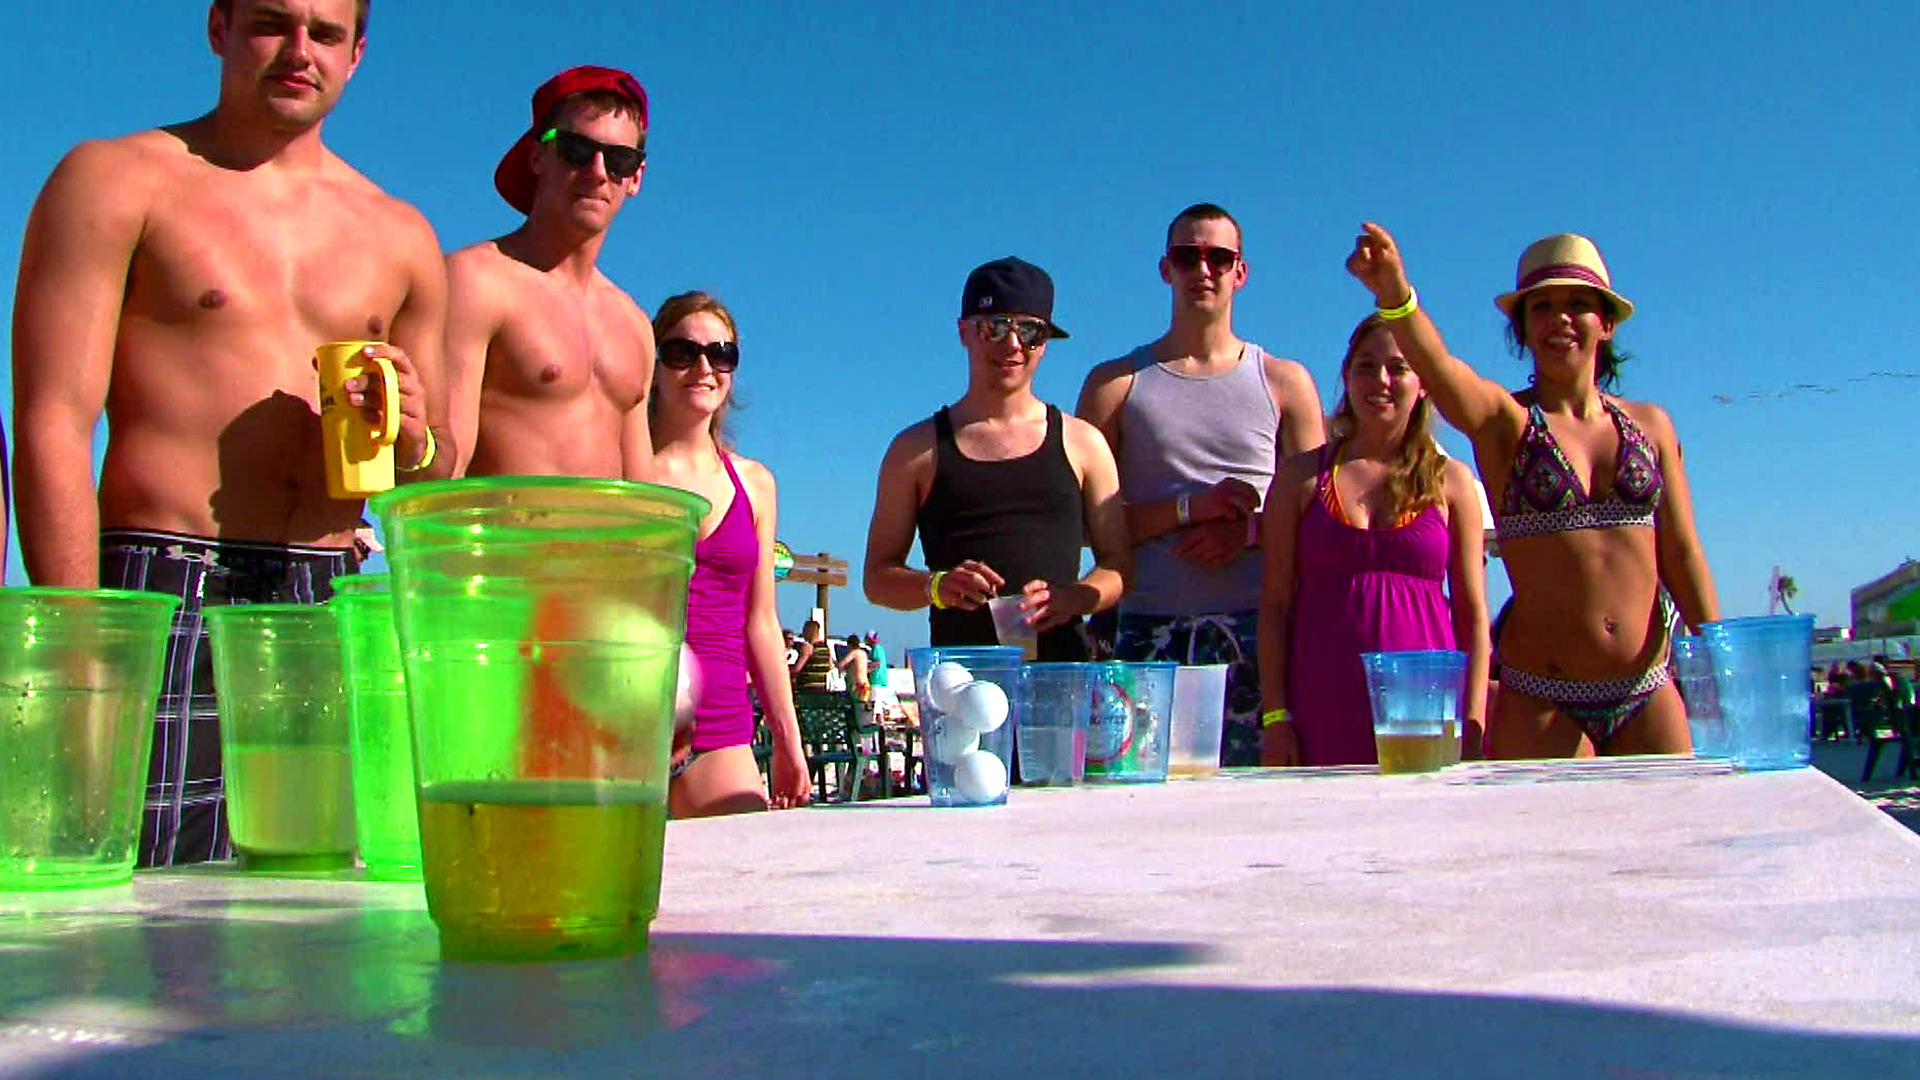 A group of spring breakers playing beer pong.